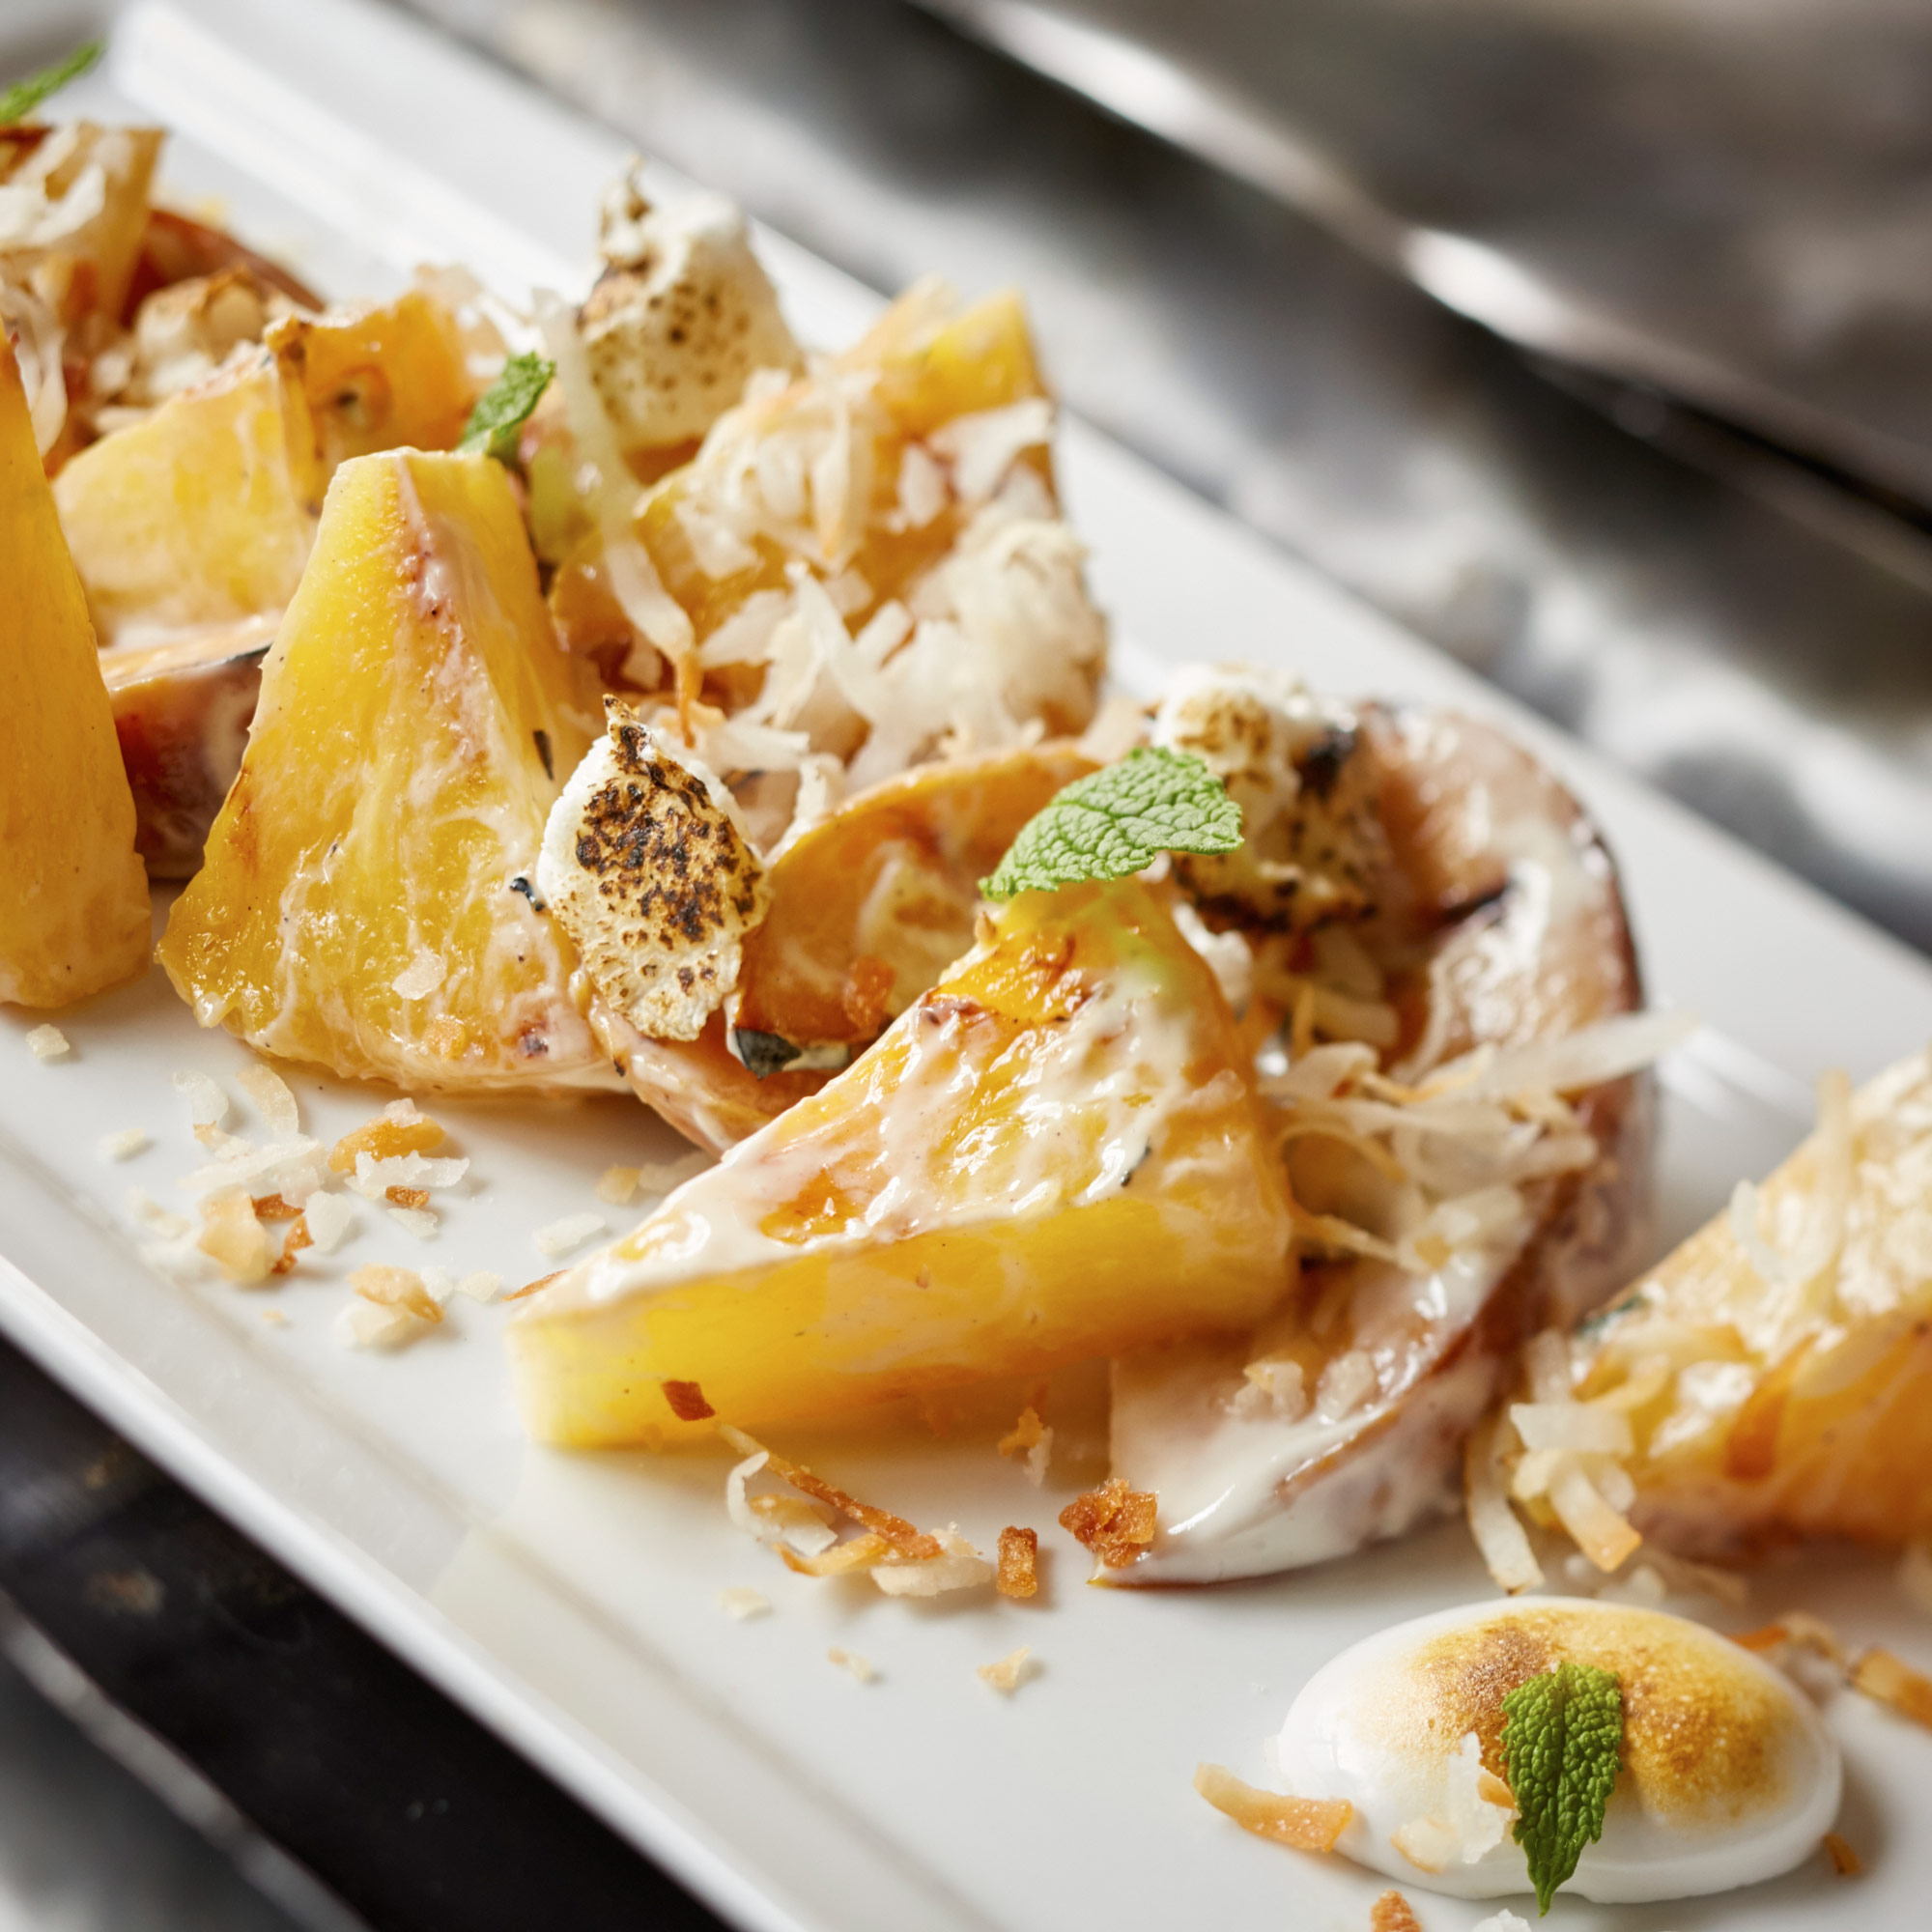 Ambrosia Grilled Peach Pineapple Salad